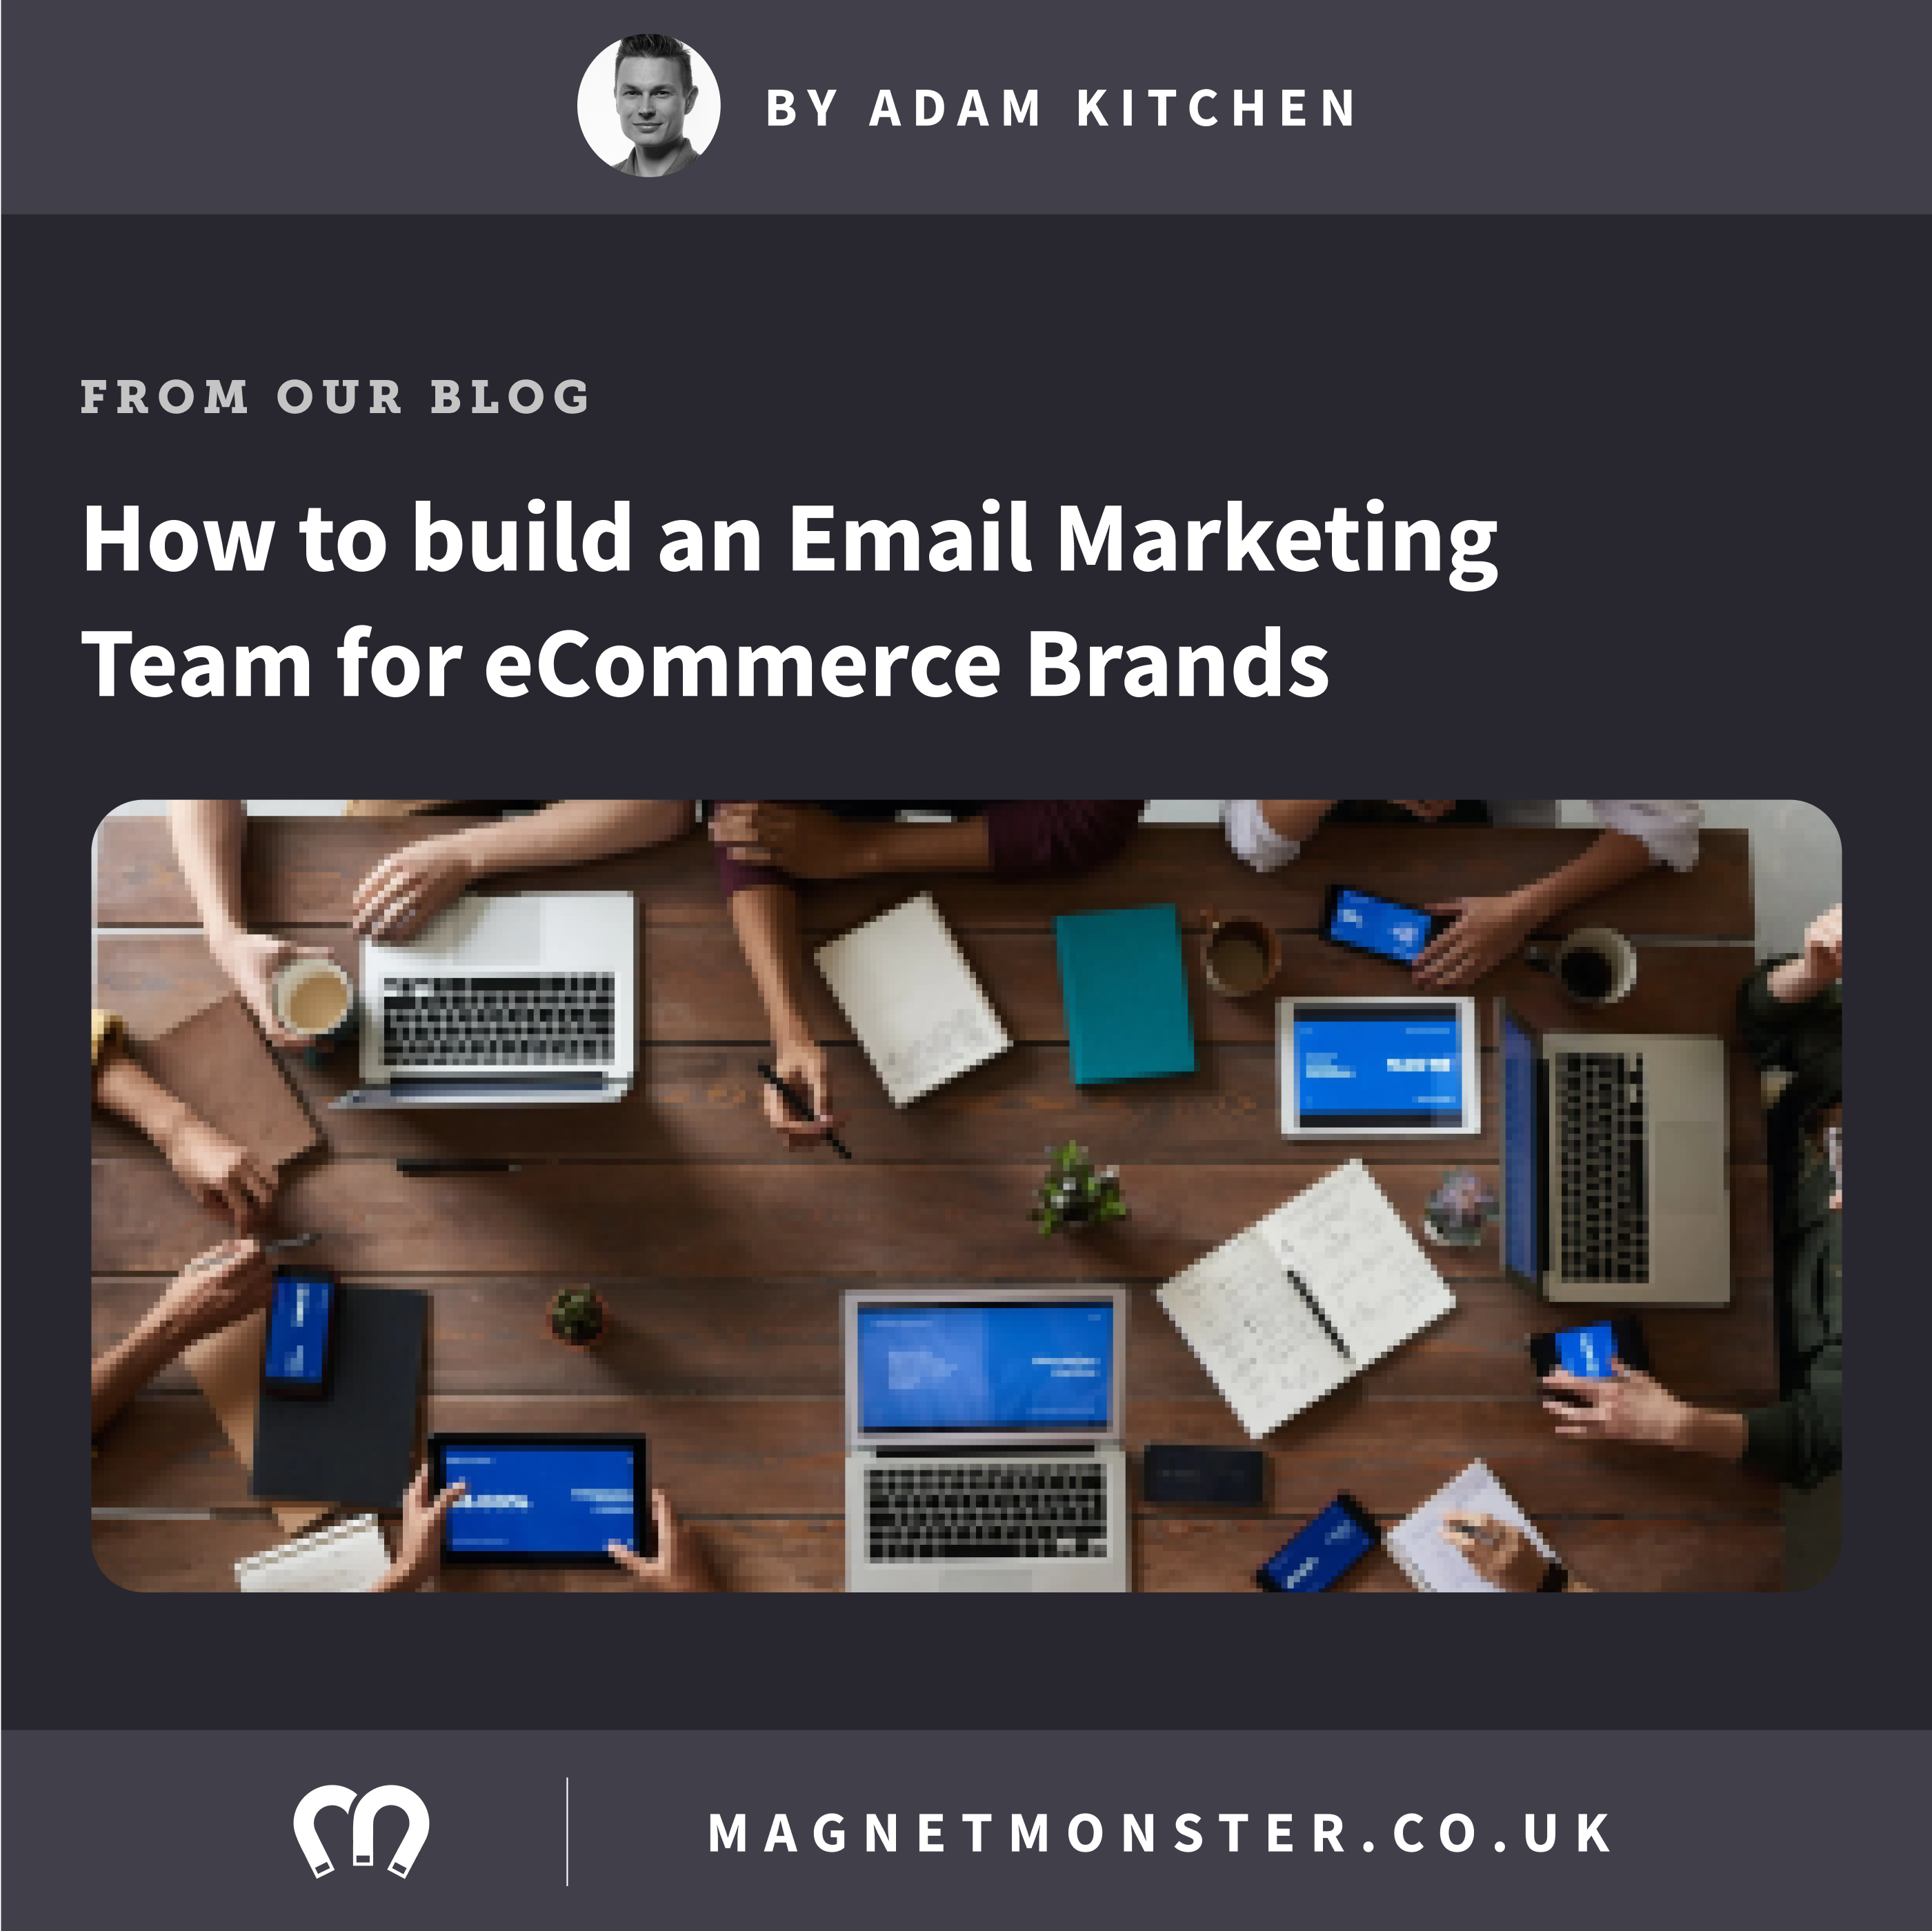 How to build an Email Marketing Team for eCommerce Brands